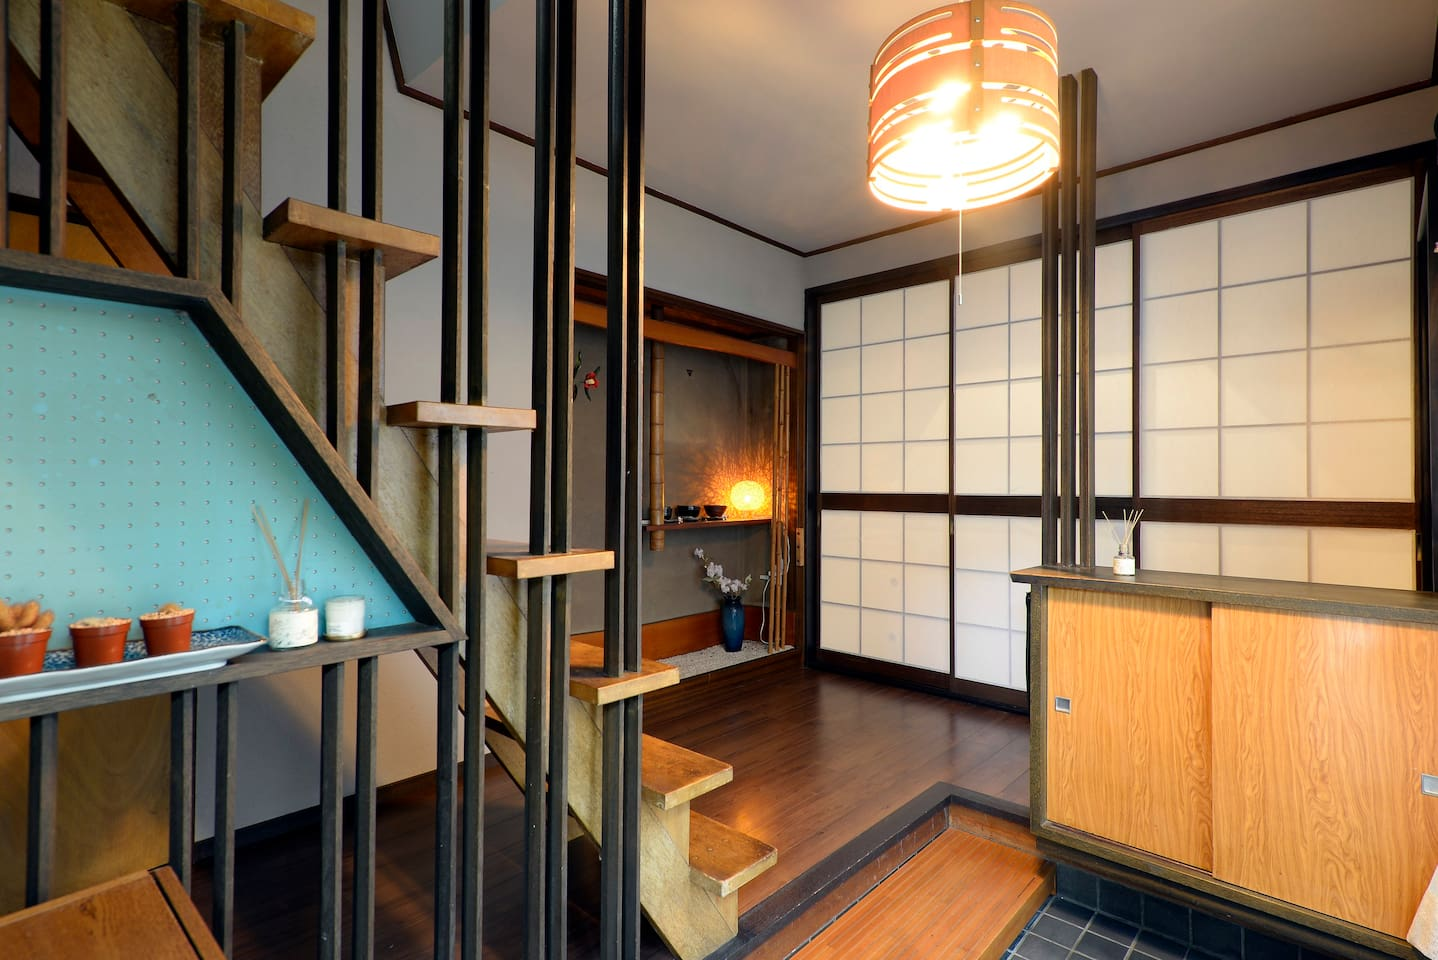 Modern Japanese house w/ garden - Houses for Rent in Toshima-ku ...